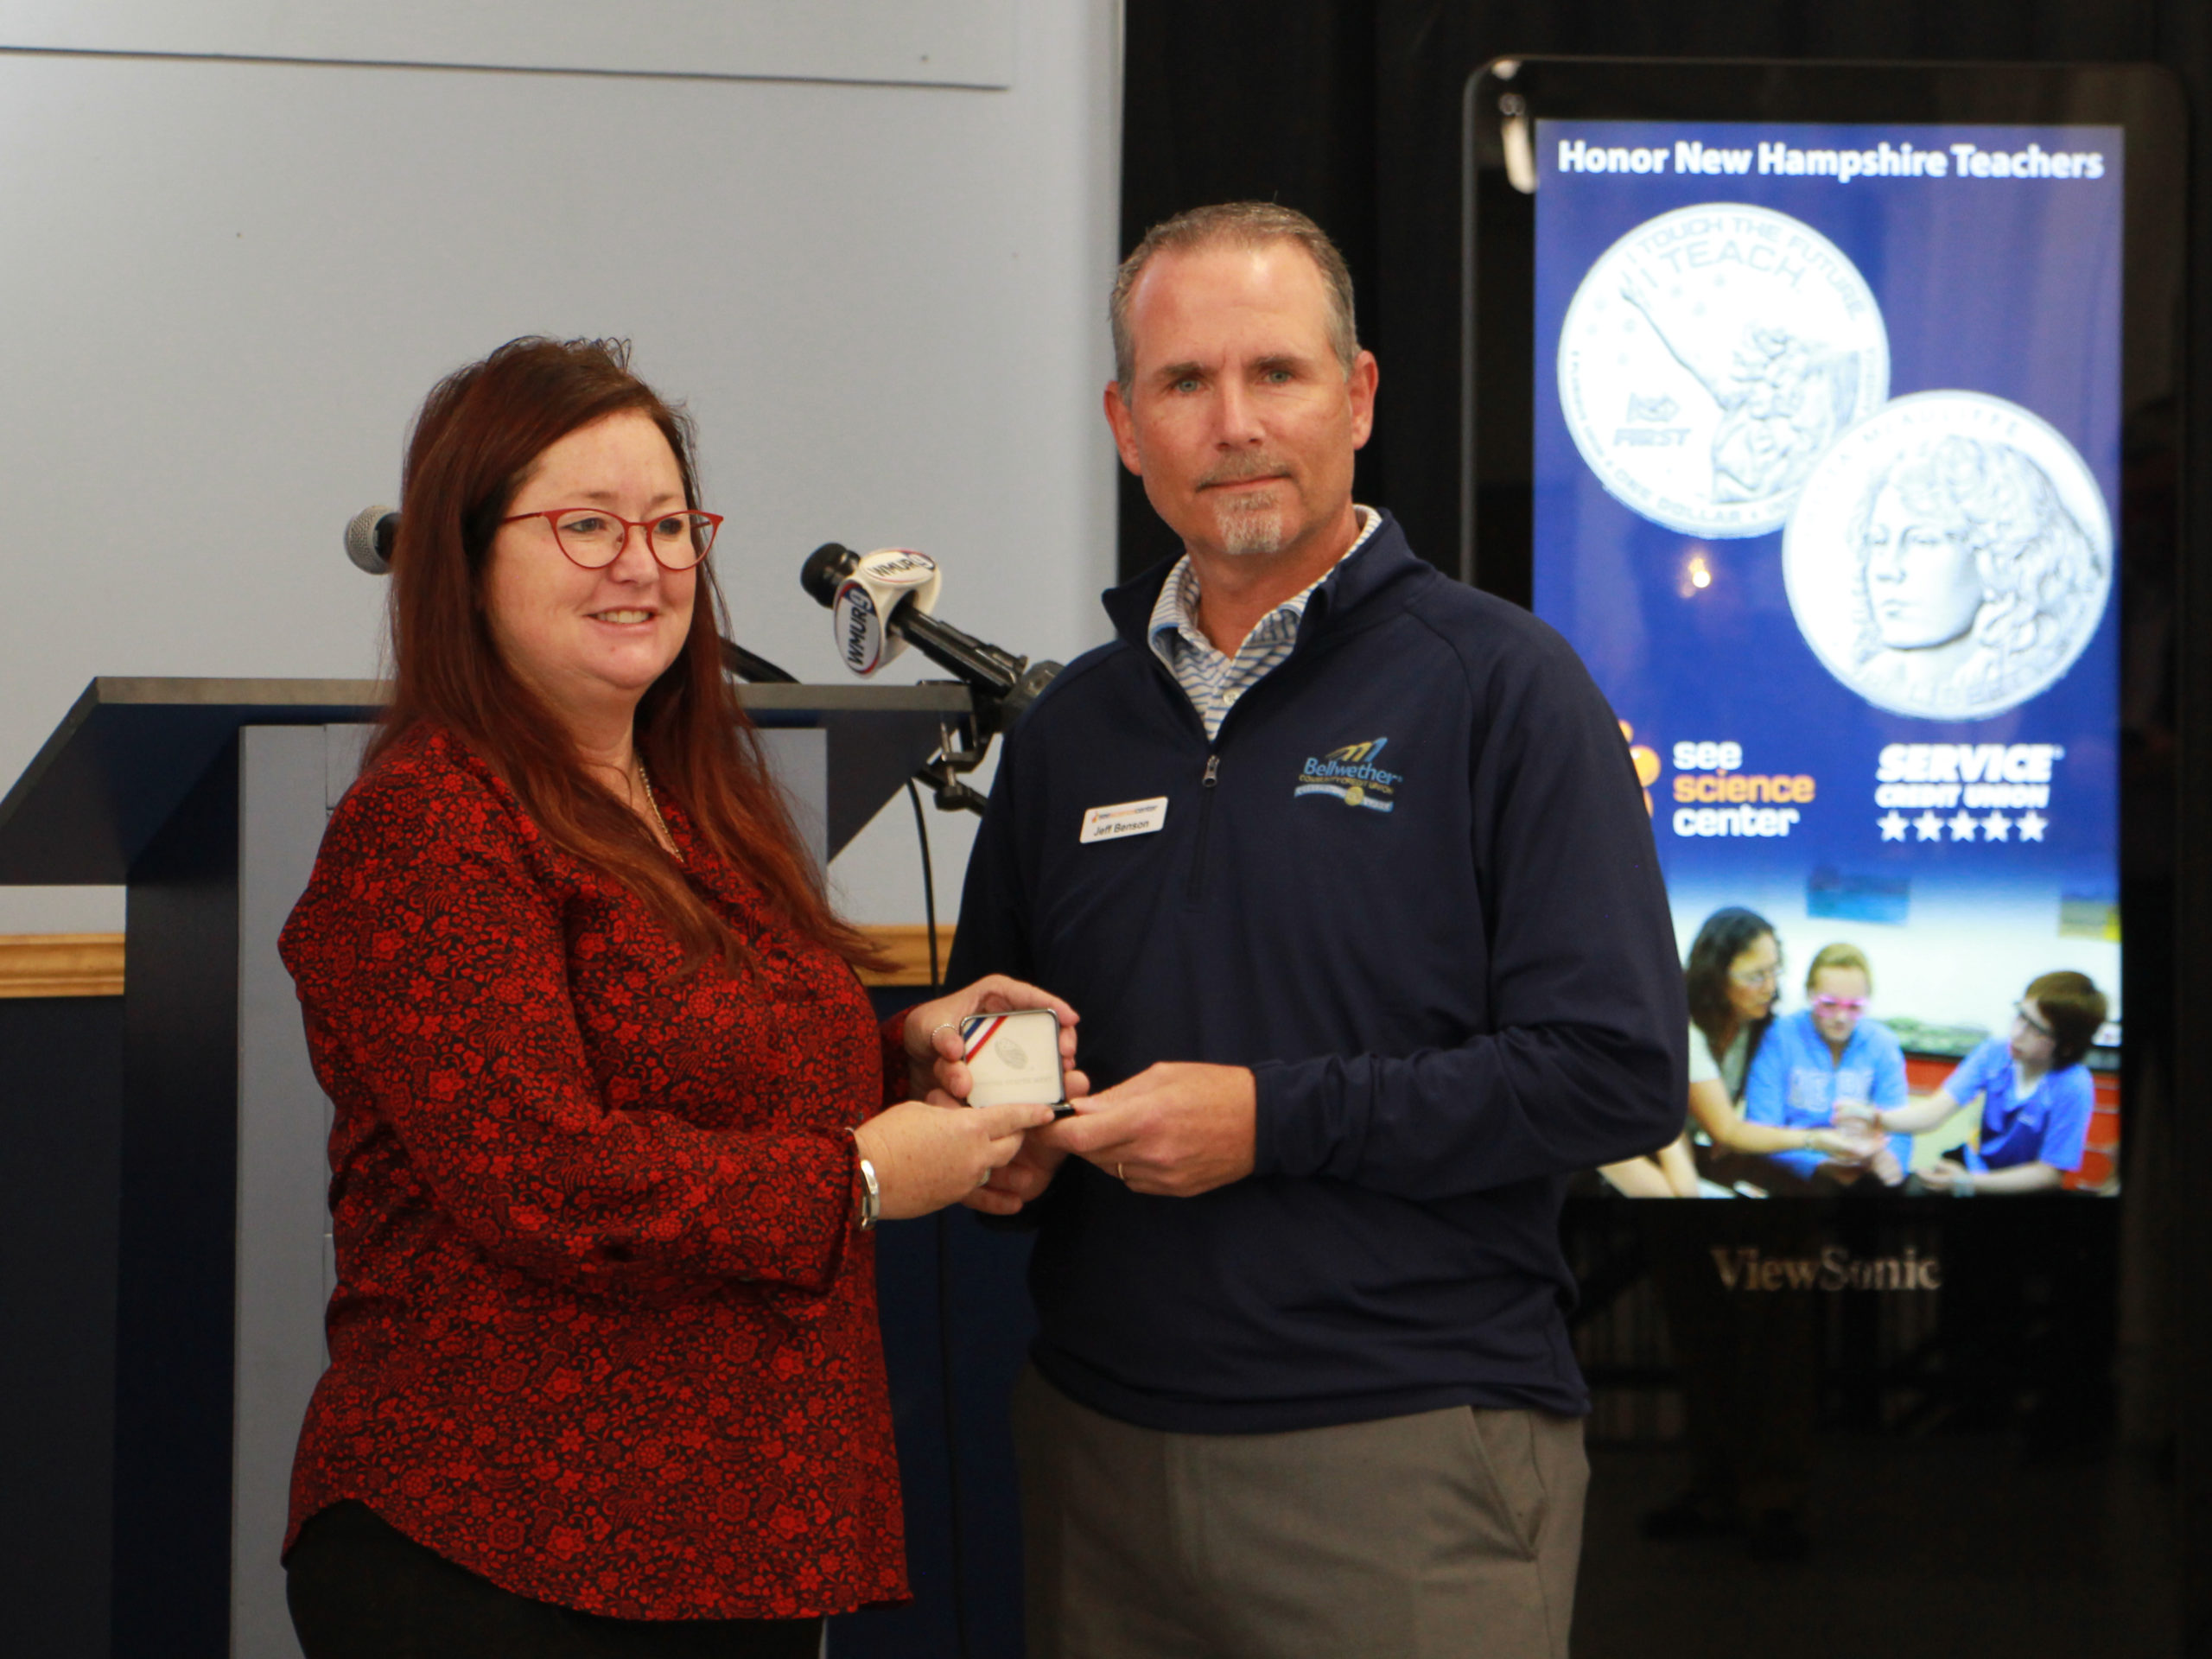 Assistant Manchester School District Superindendant Amy Allen receives coins for Manchester teachers from SEE board chair Jeff Benson